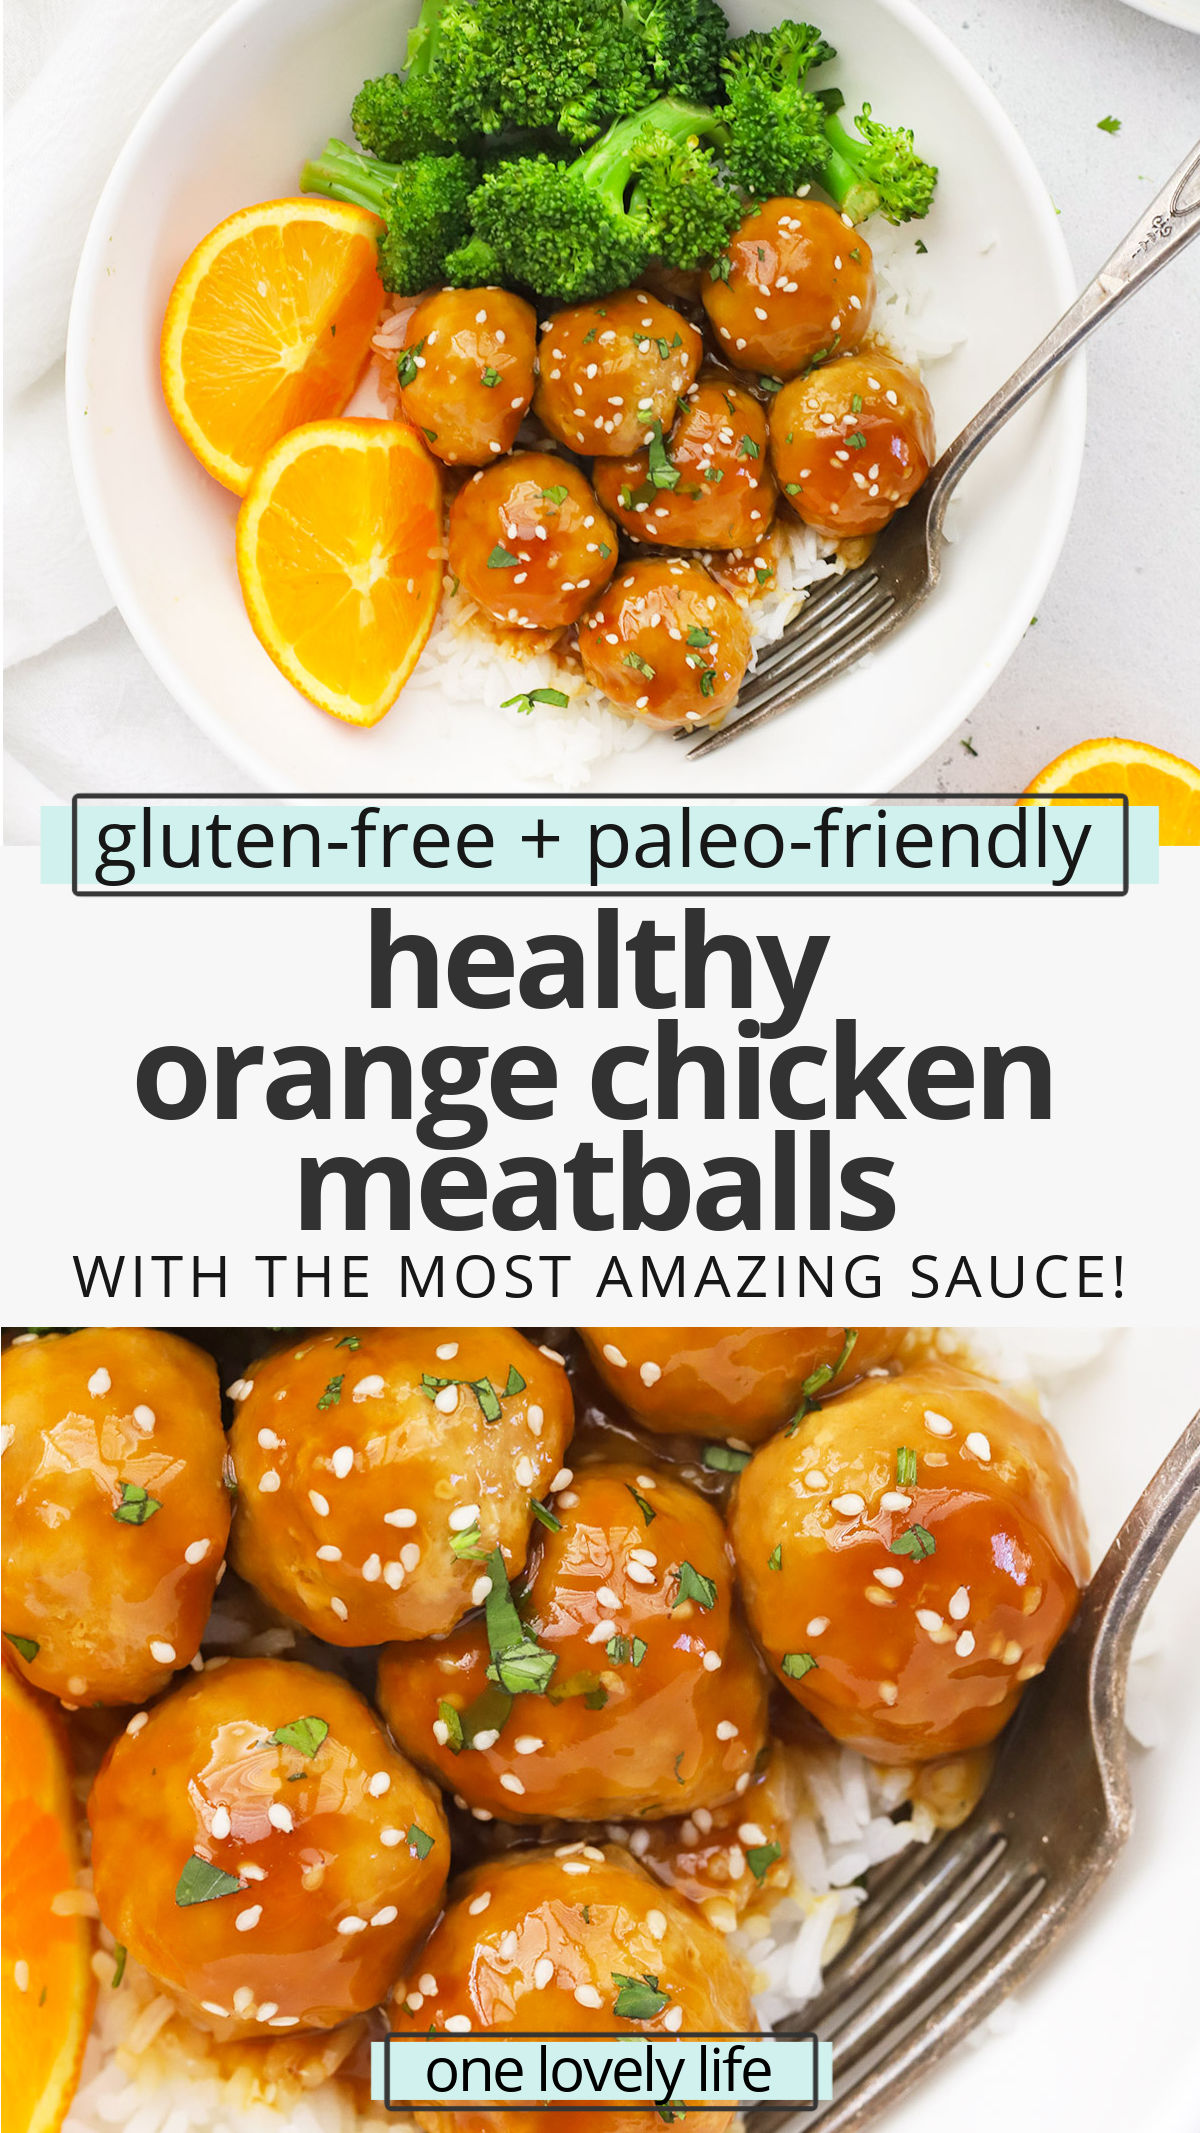 Healthy Orange Chicken Meatballs - These yummy gluten-free chicken meatballs are smothered in our sweet and tangy orange stir-fry sauce to make a delicious dinner! (Paleo-Friendly) // Paleo Orange Chicken Meatballs Recipe // Sauce For Orange Chicken // Glazed Orange Chicken Meatballs #PaleoDinner #GlutenFree #OrangeChicken #TakeoutFakeOut #HealthyDinner #ChickenMeatballs